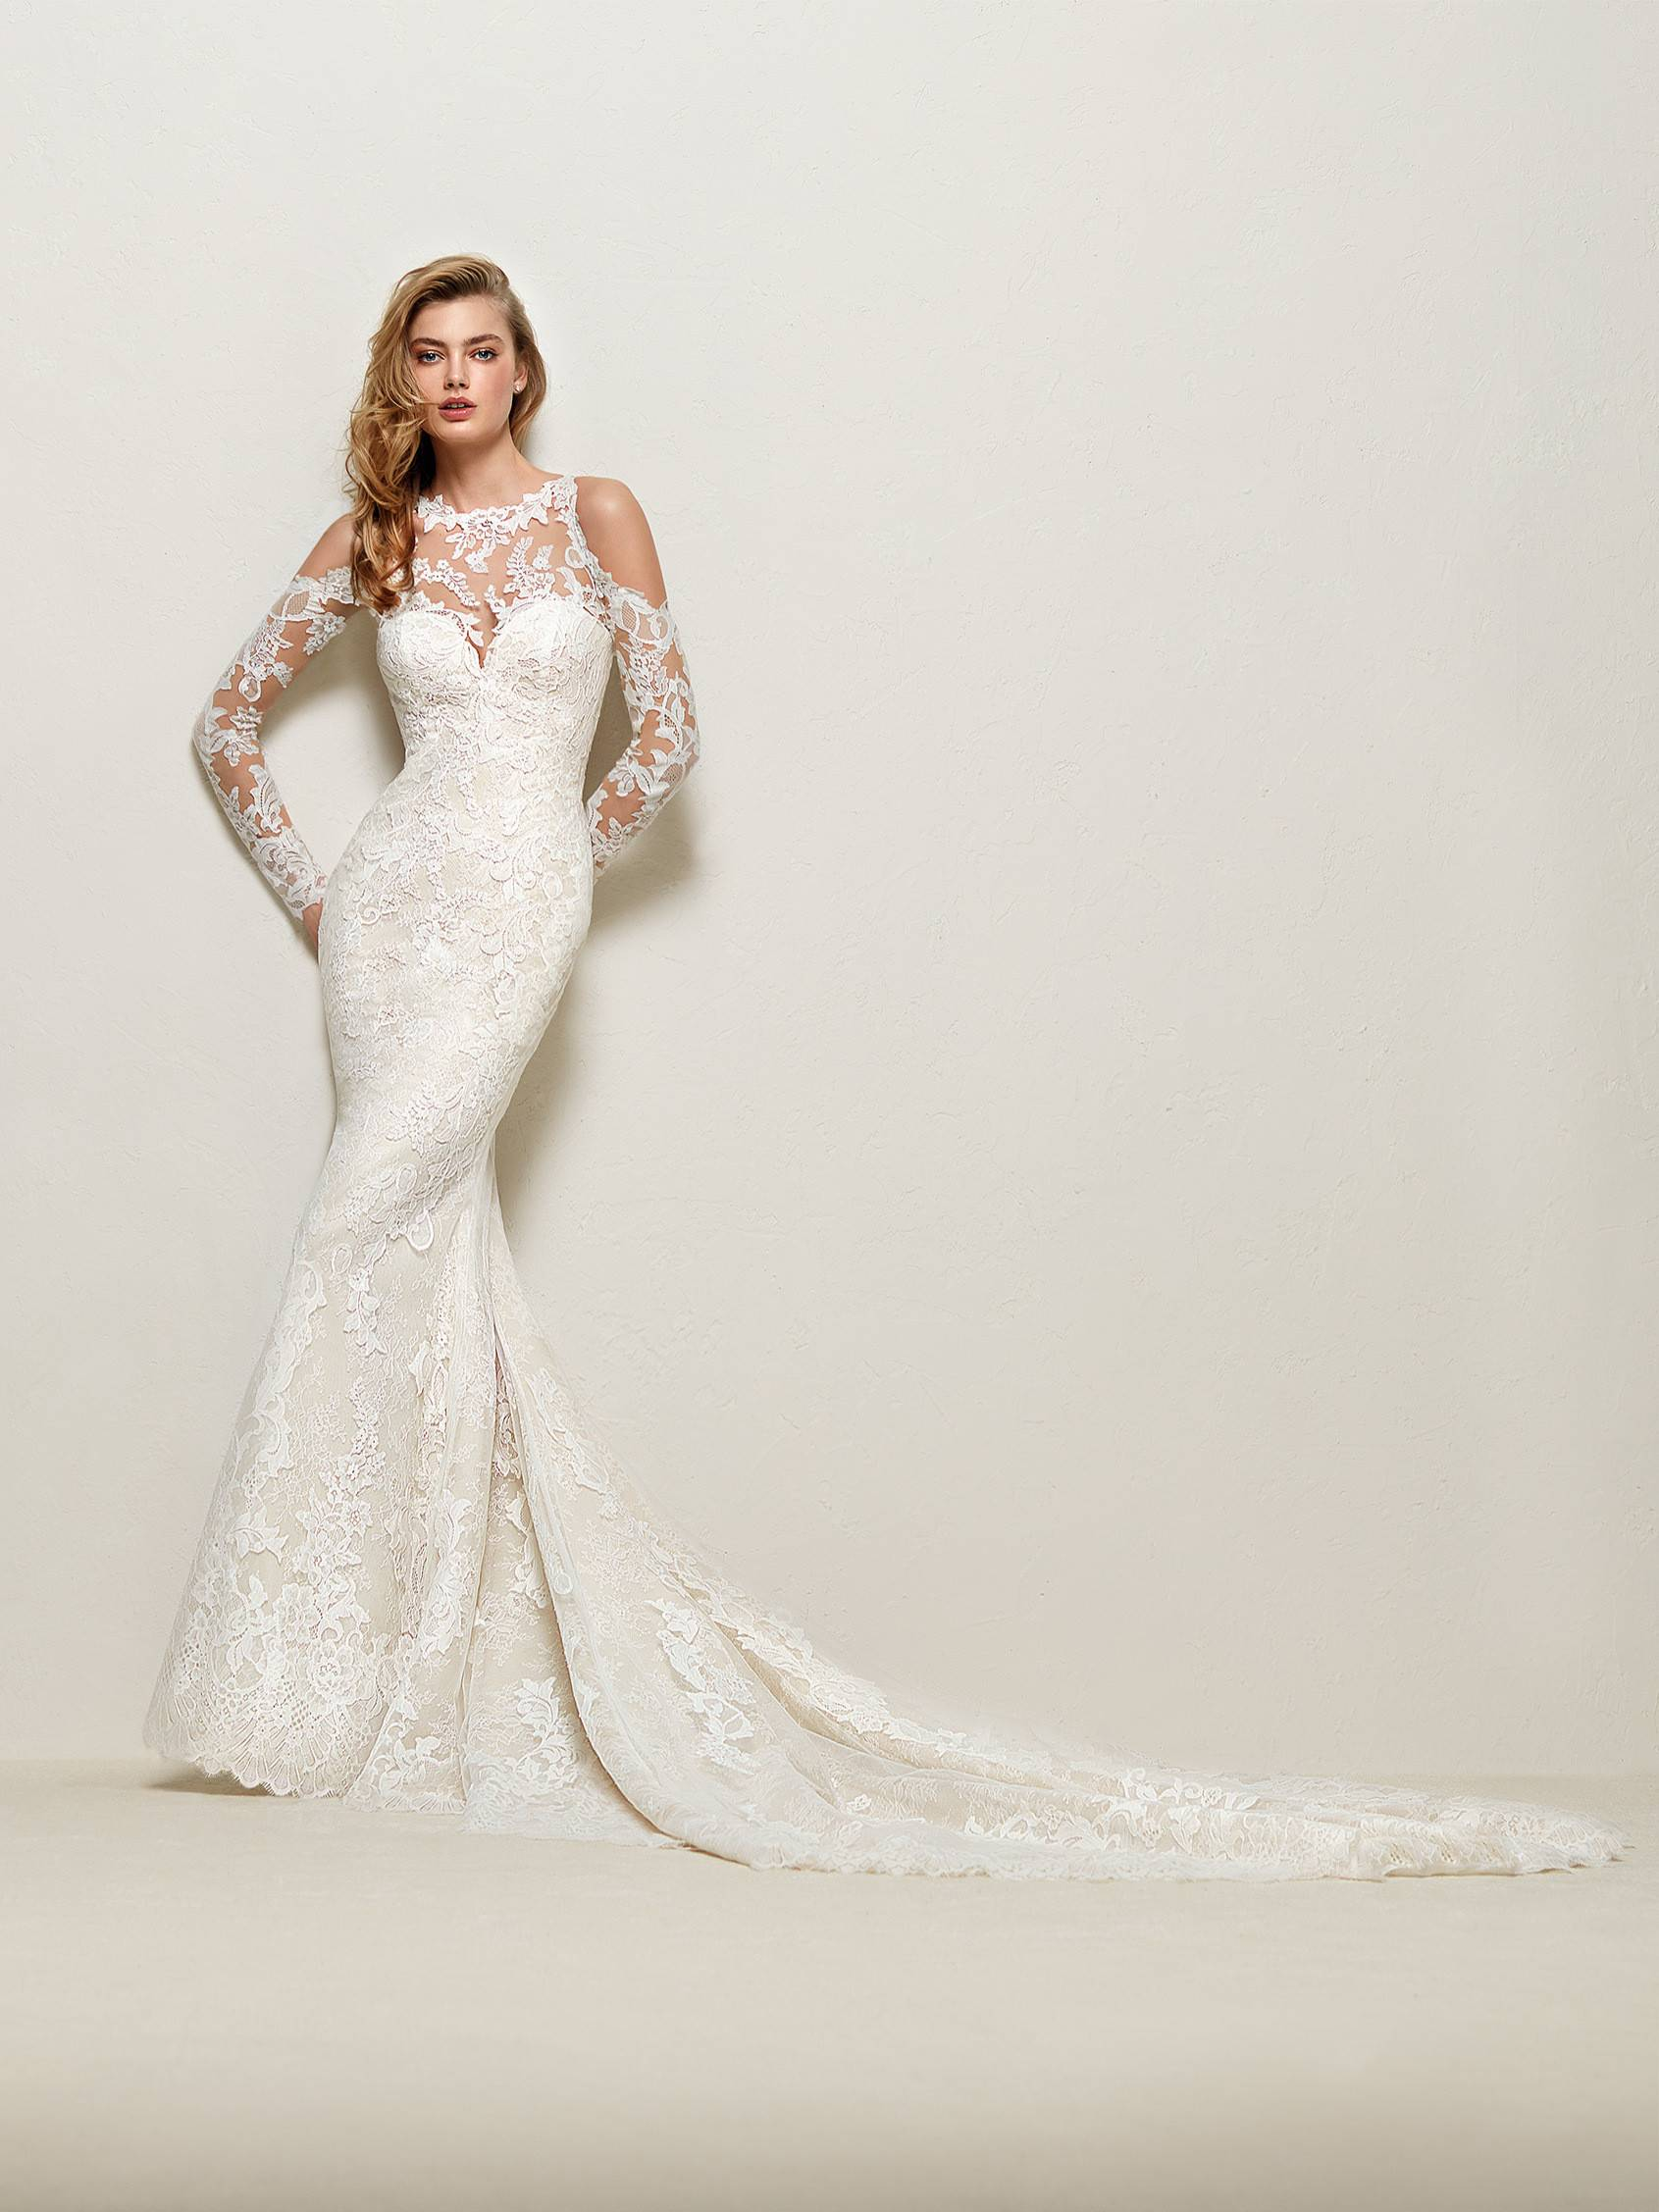 Robes De Mariee Pronovias Mary Mariees Boheme Chic A